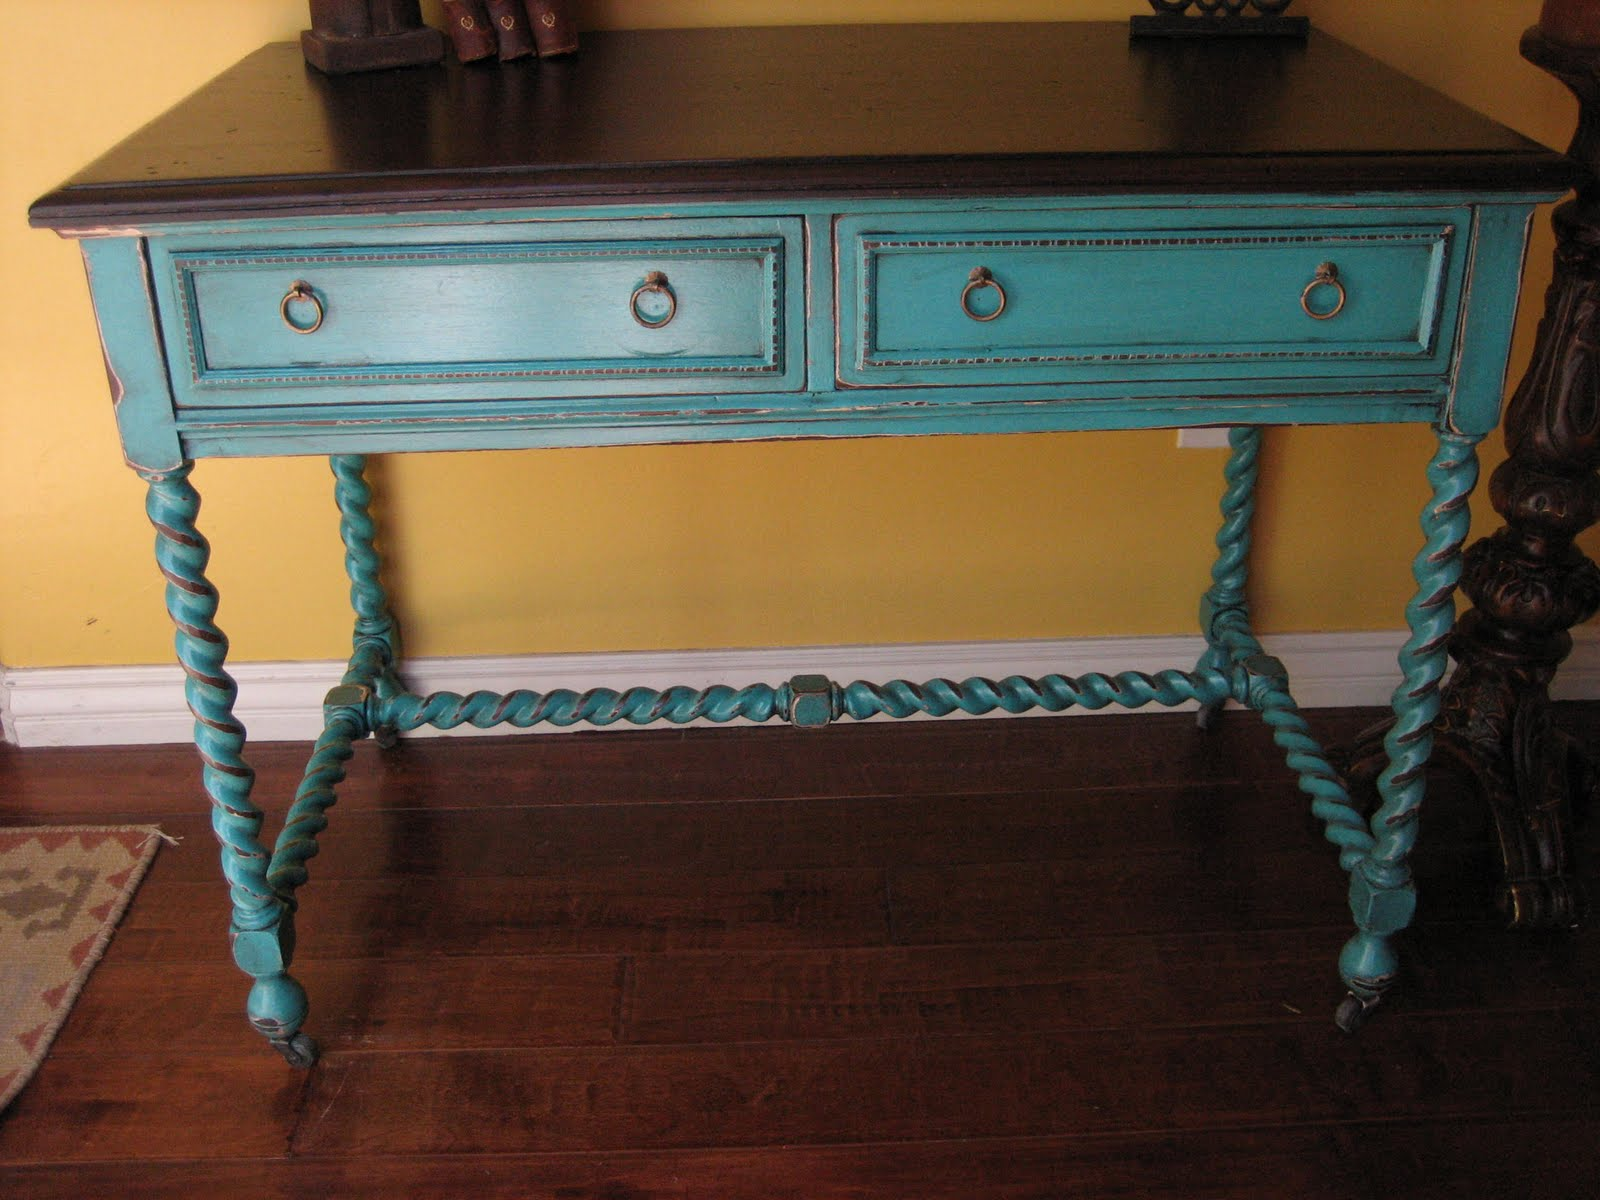 Download Repainting Distressing Furniture European Farmhouse Finishes Turquoise